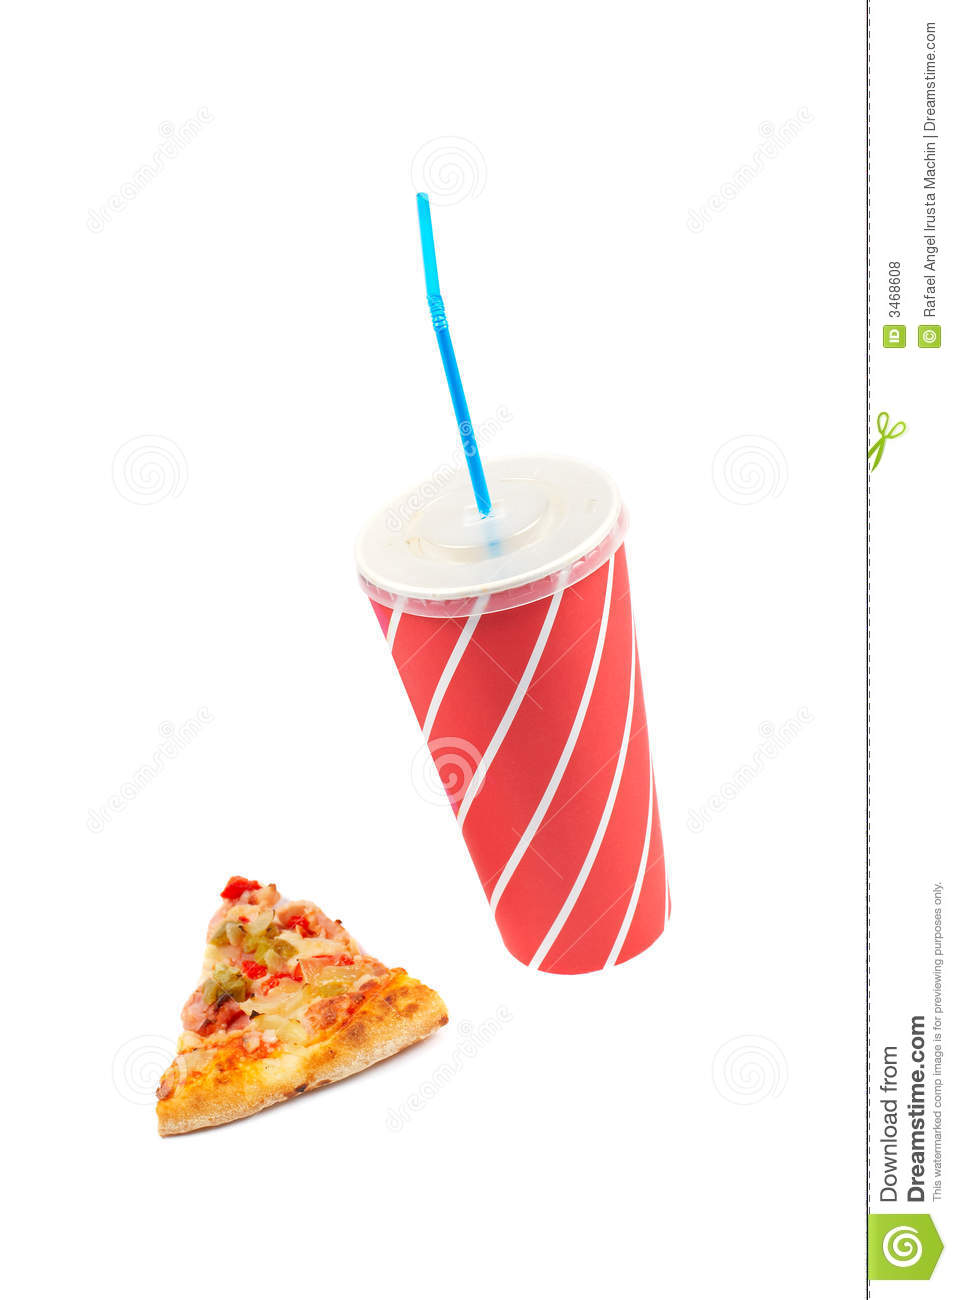 Slice Of Pizza And Soda Drink Royalty Free Stock Photos.